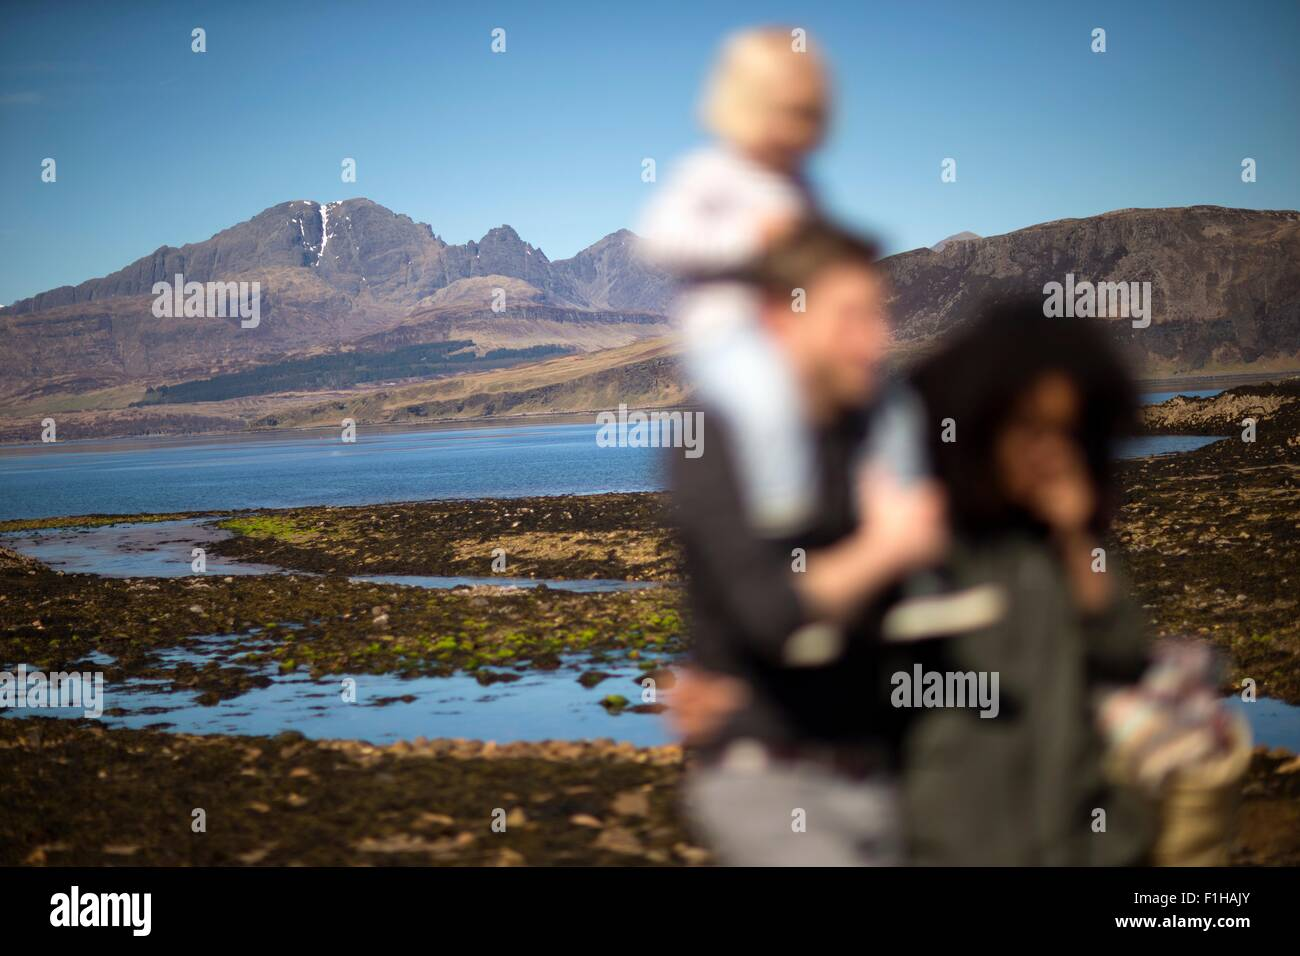 Family at Loch Eishort, Isle of Skye, Hebrides, Scotland - Stock Image